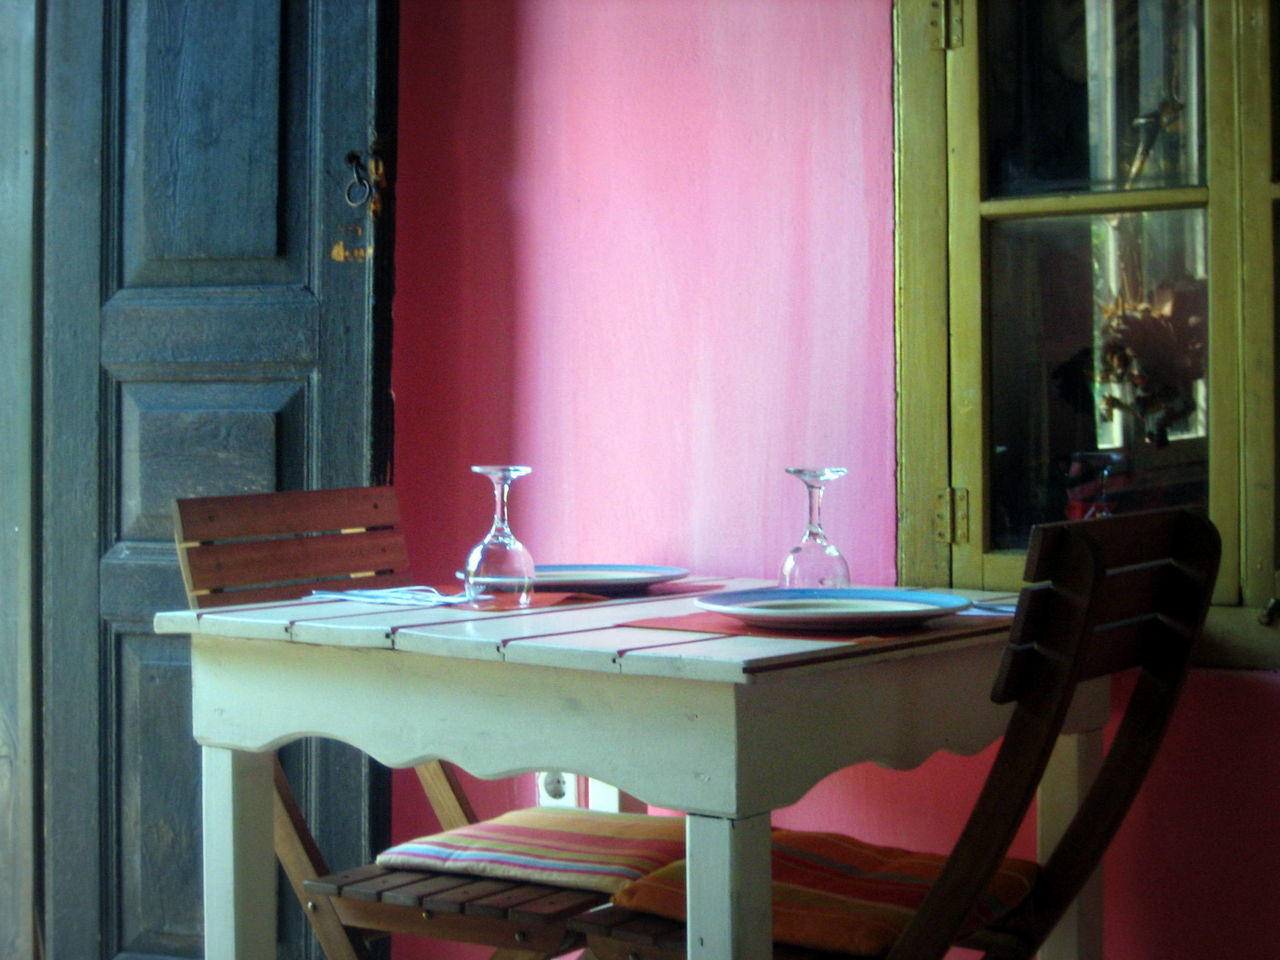 Table for two Absence Chair Dining Table Empty Indoors  Pink Place Setting Rhodes Rhodos Table Wine Moments